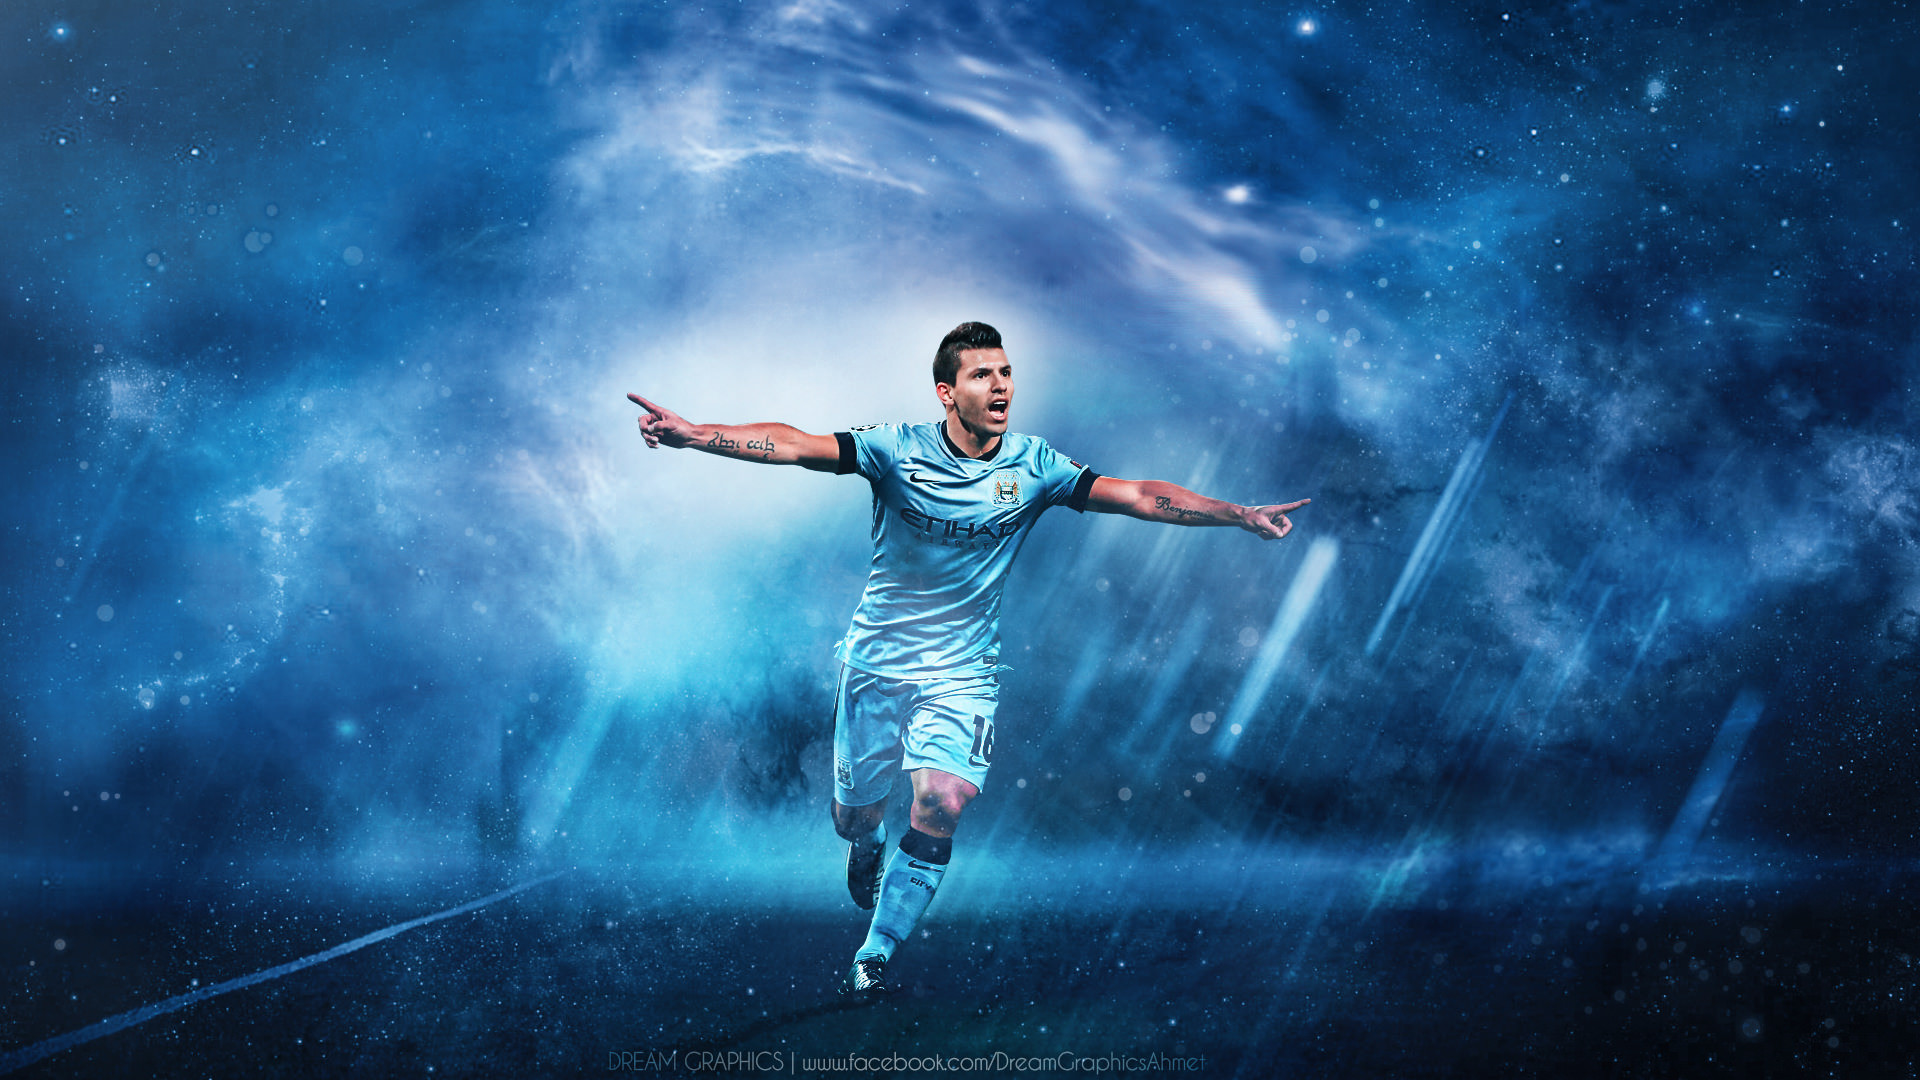 Man City Wallpapers 2017 (85+ Background Pictures